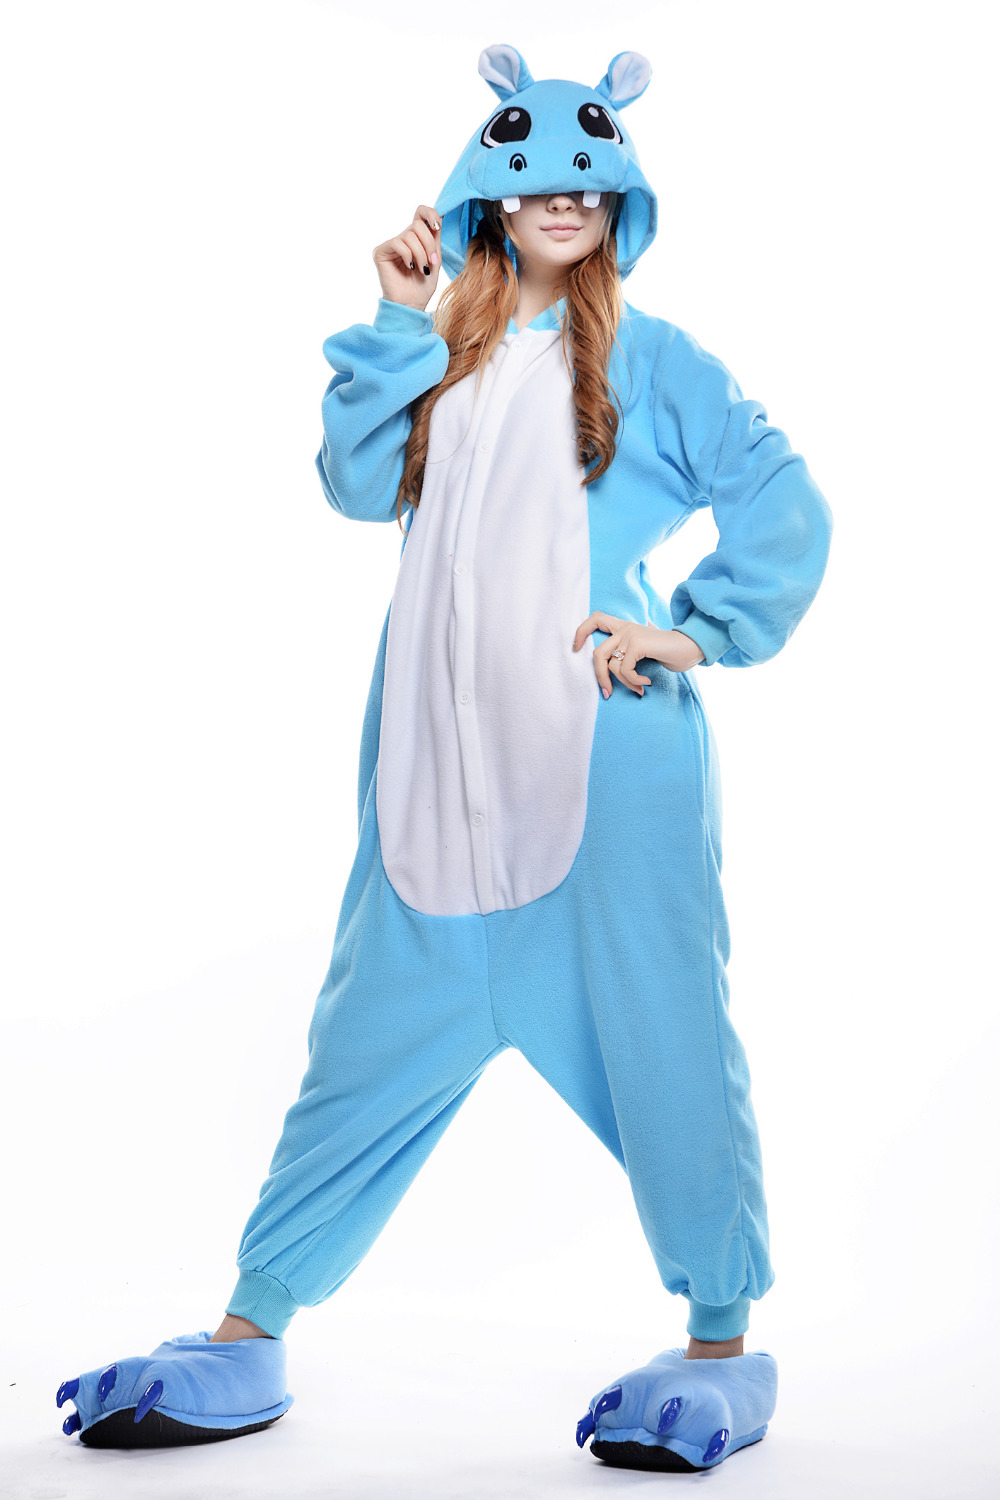 Halloween Afkomst.Us 28 99 Cartoon Gloria Pyjama Nieuwste Hippo Motomoto Animal Cosplay Onesie Halloween Kostuum Afkomst Kleding En Lovers Kleding In Cartoon Gloria